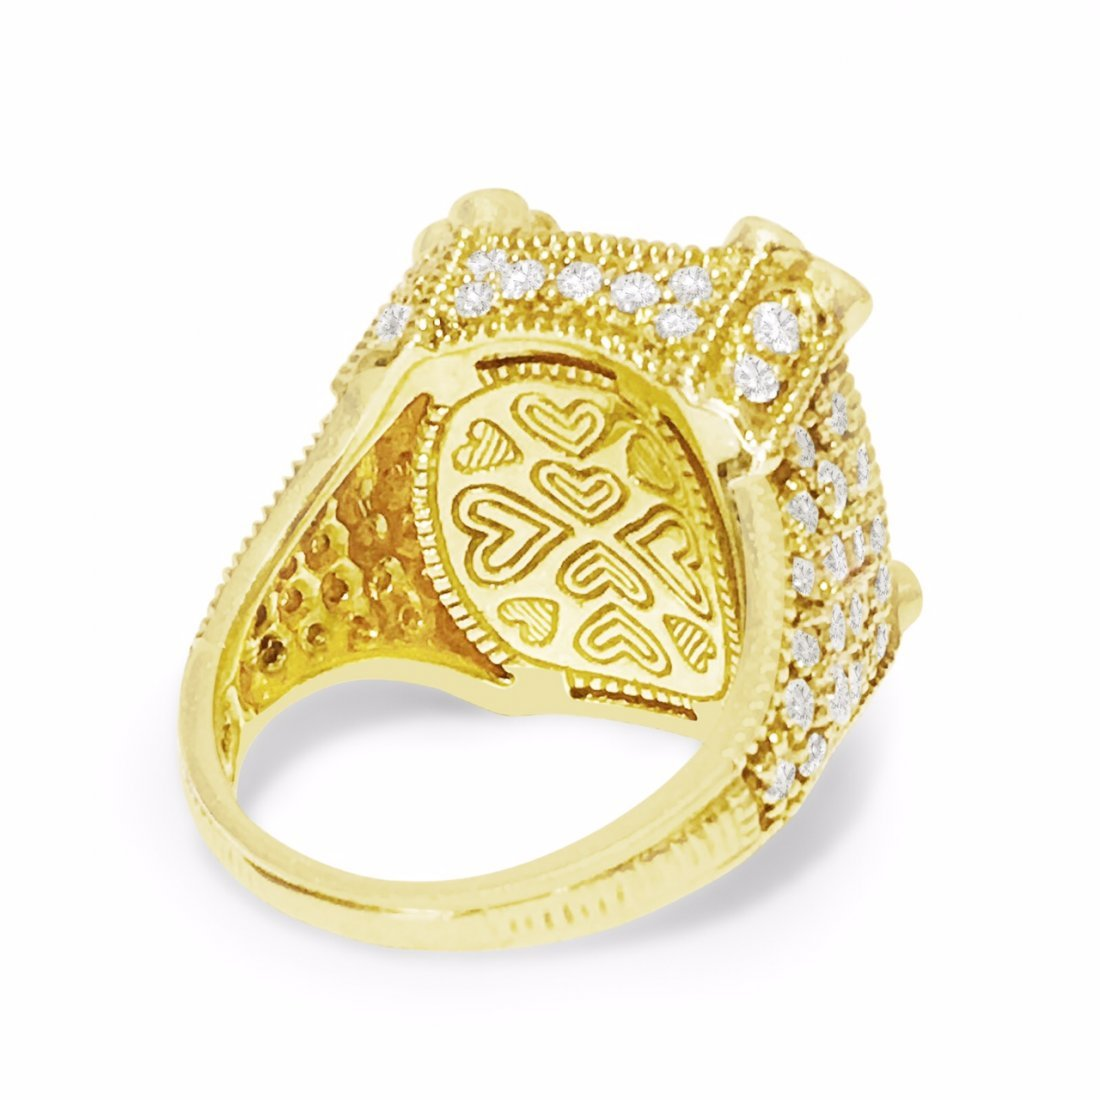 18K Gold, 25 CT Natural Yellow Stone and Diamond Ring - 5